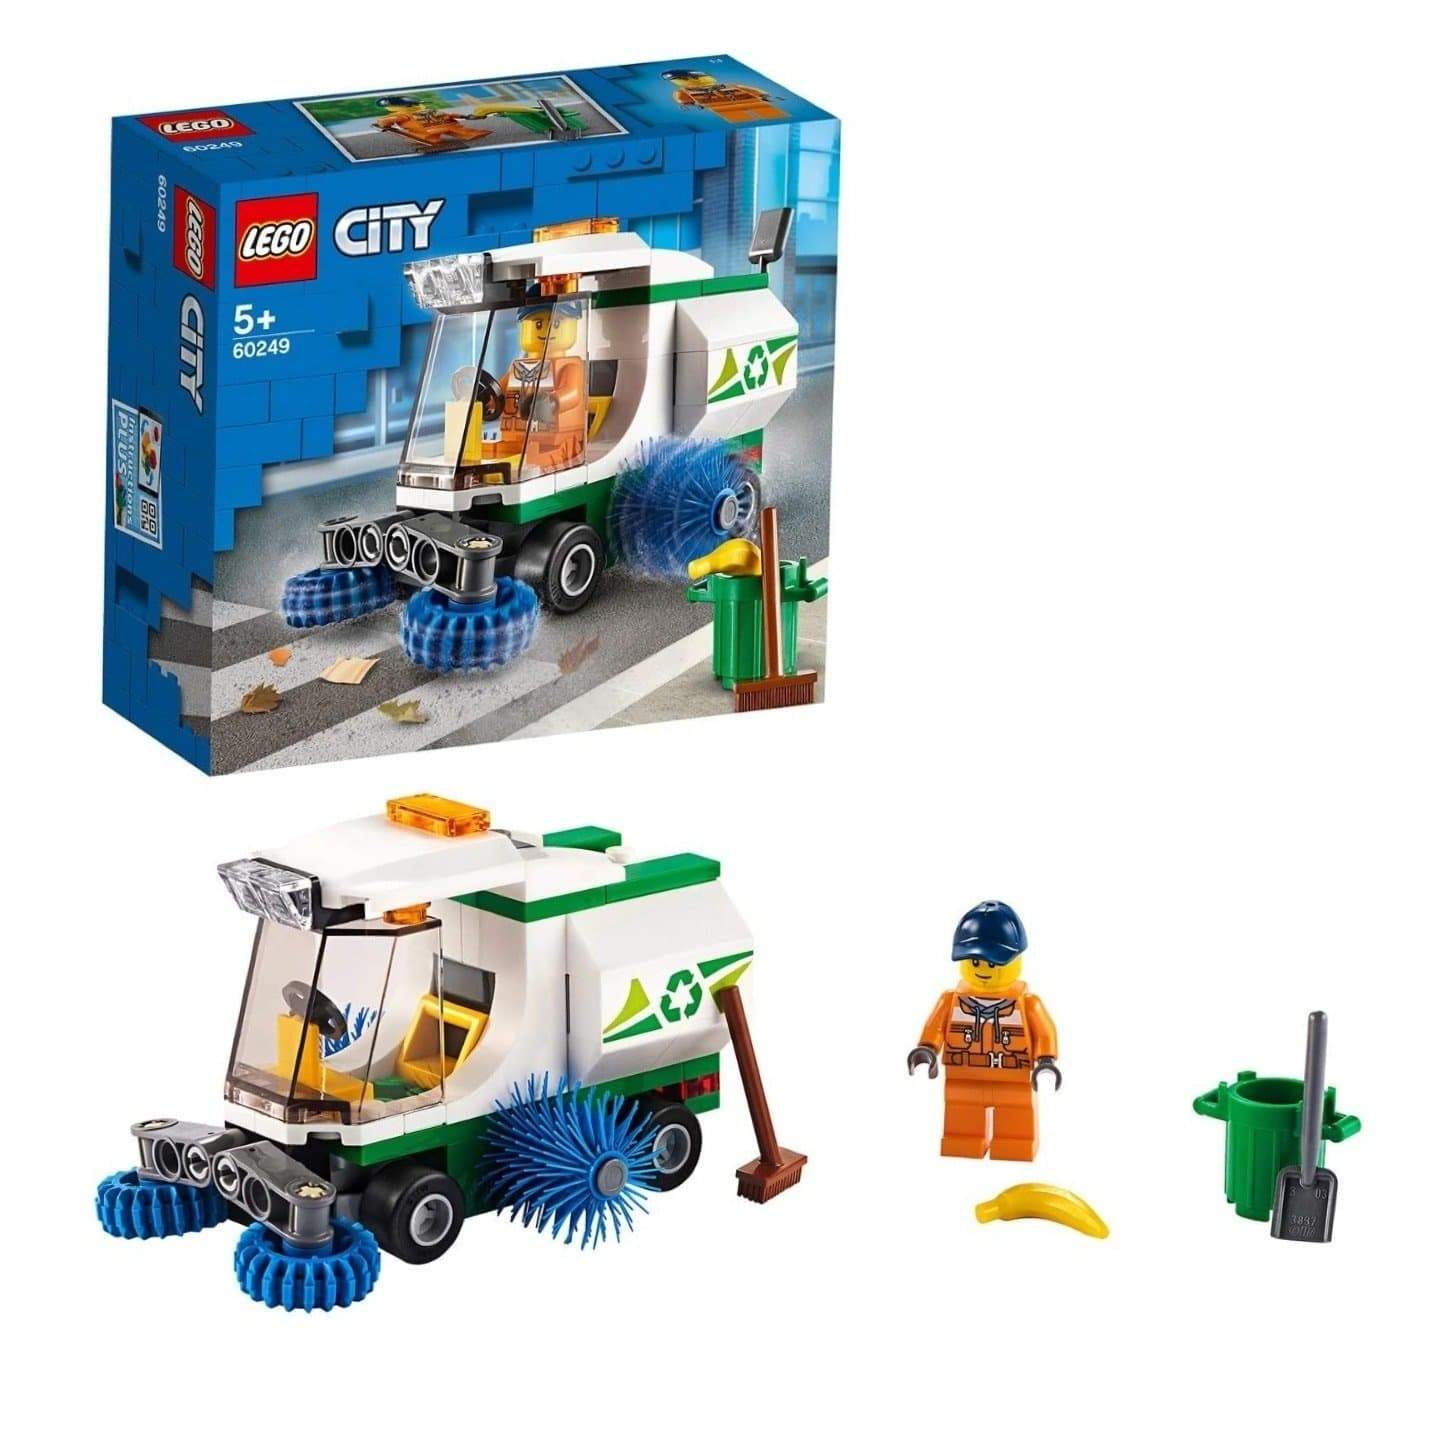 lego city great vehicles street sweeper garbage truck toy with driver car sets for kids 5 year old